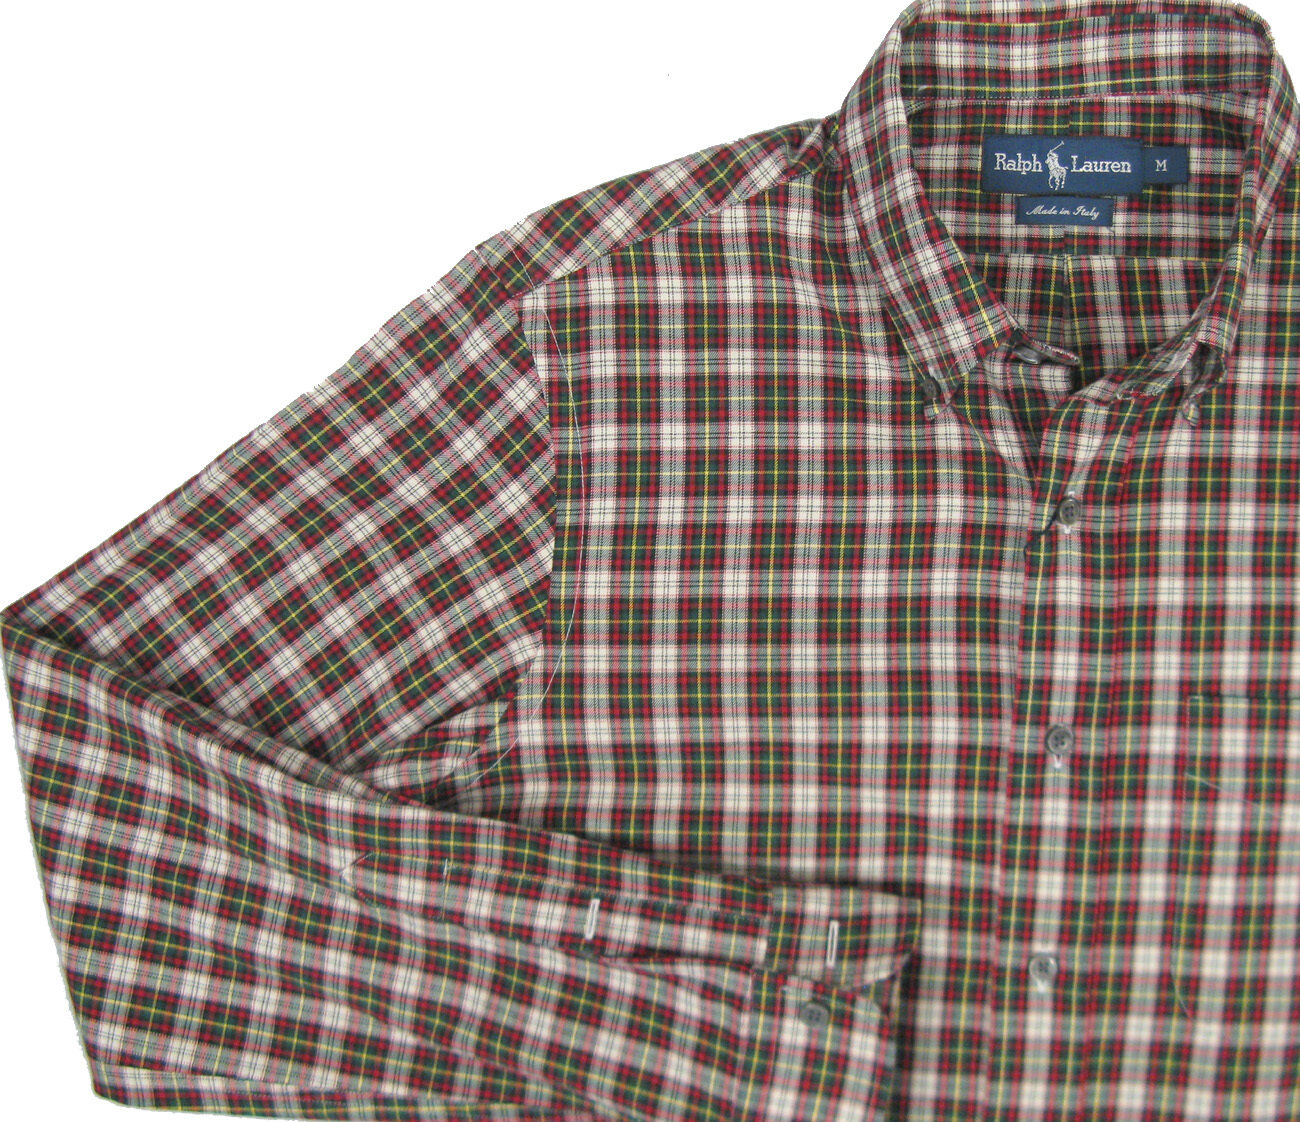 NEW  Polo Ralph Lauren Plaid Shirt   M  Button Front  Brushed Cotton  ITALY